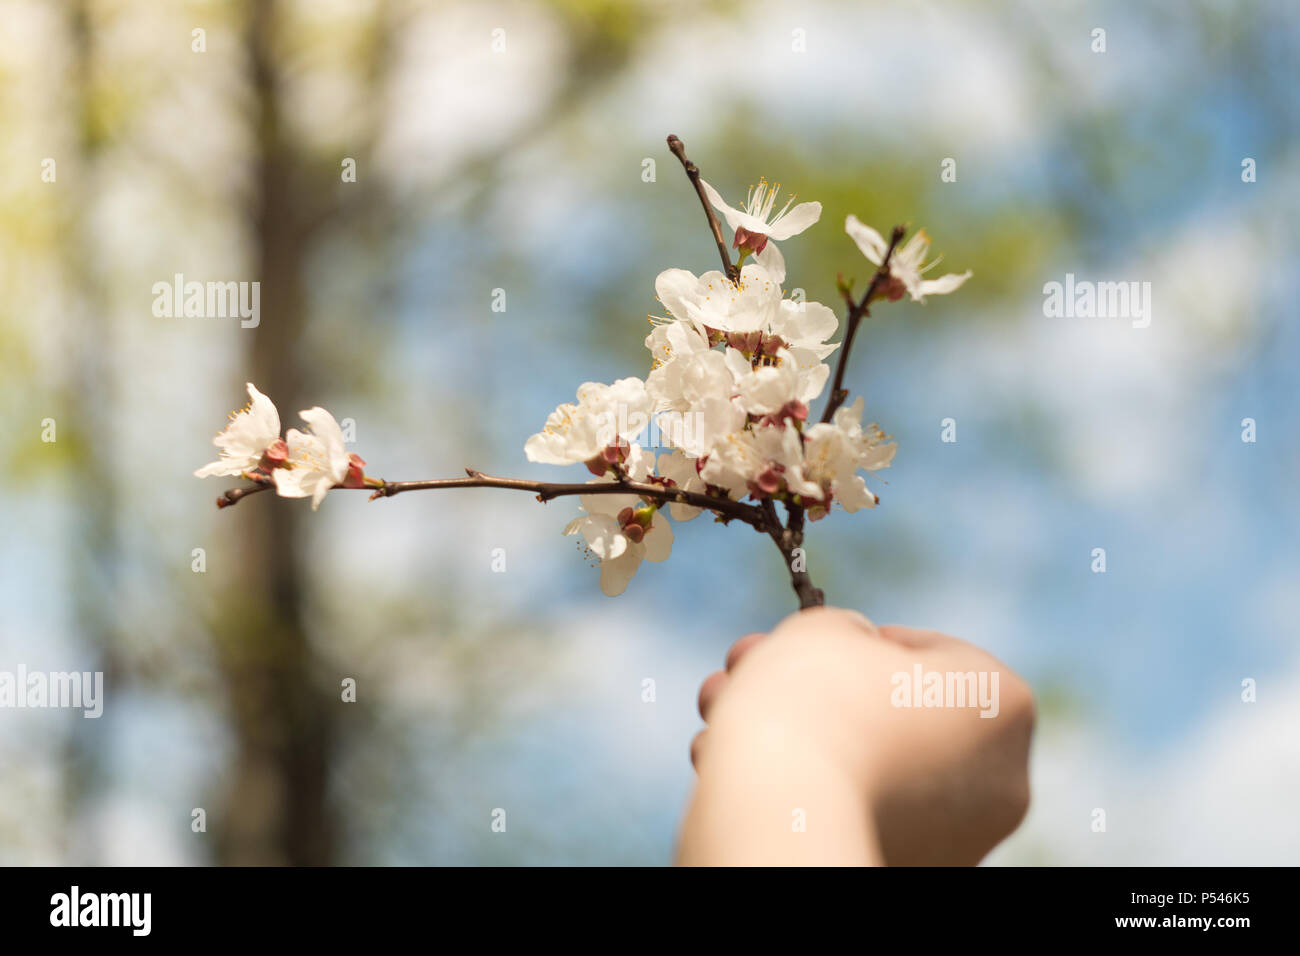 Childs Hand Holds Flowers Childrens Hand Flowers In Hand White